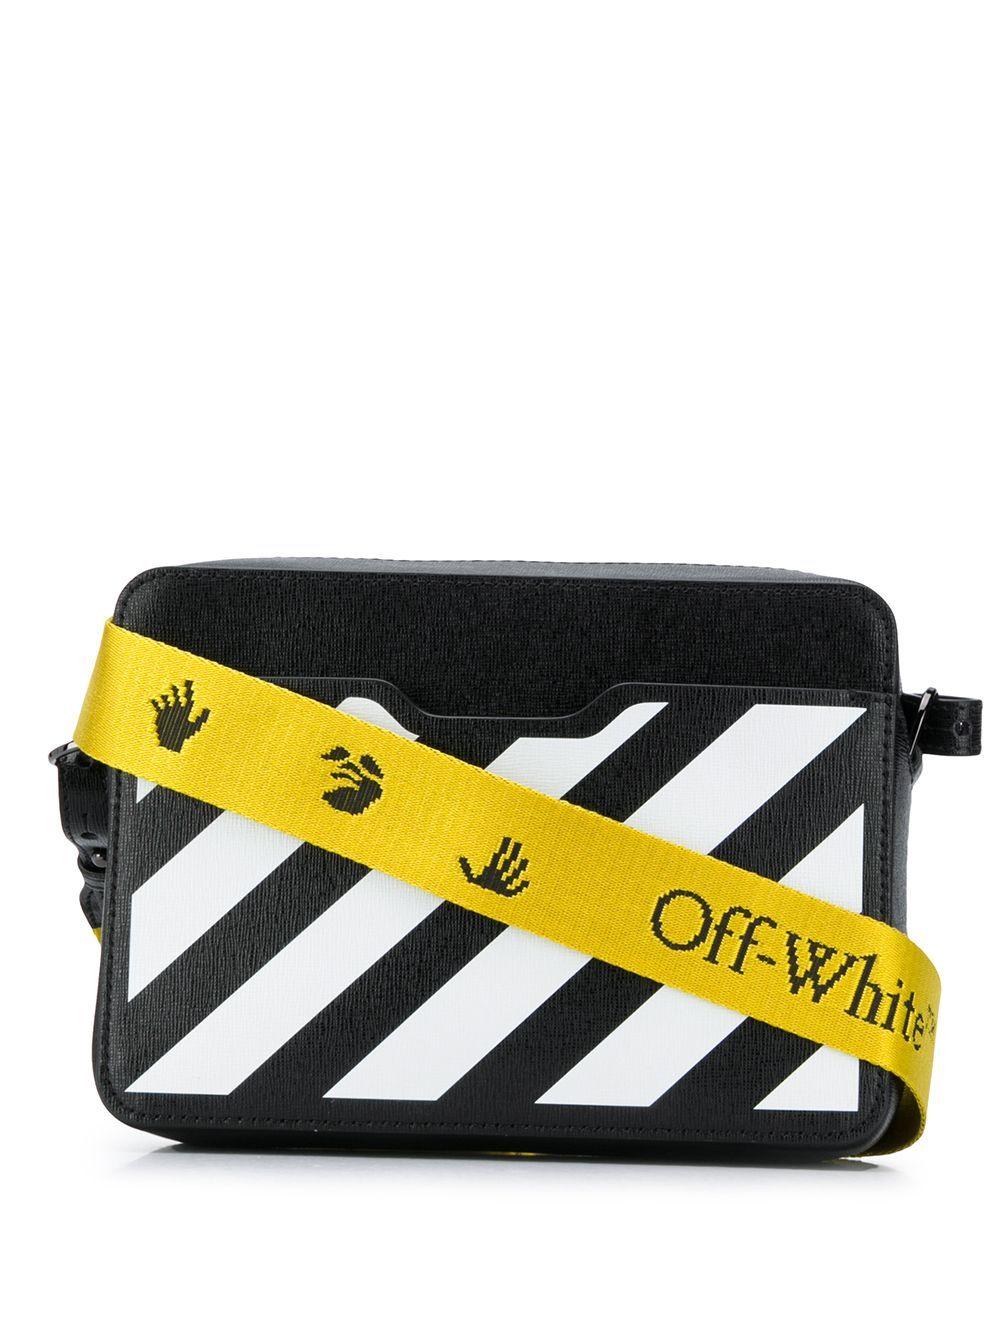 OFF-WHITE diagonal camera bag black/white